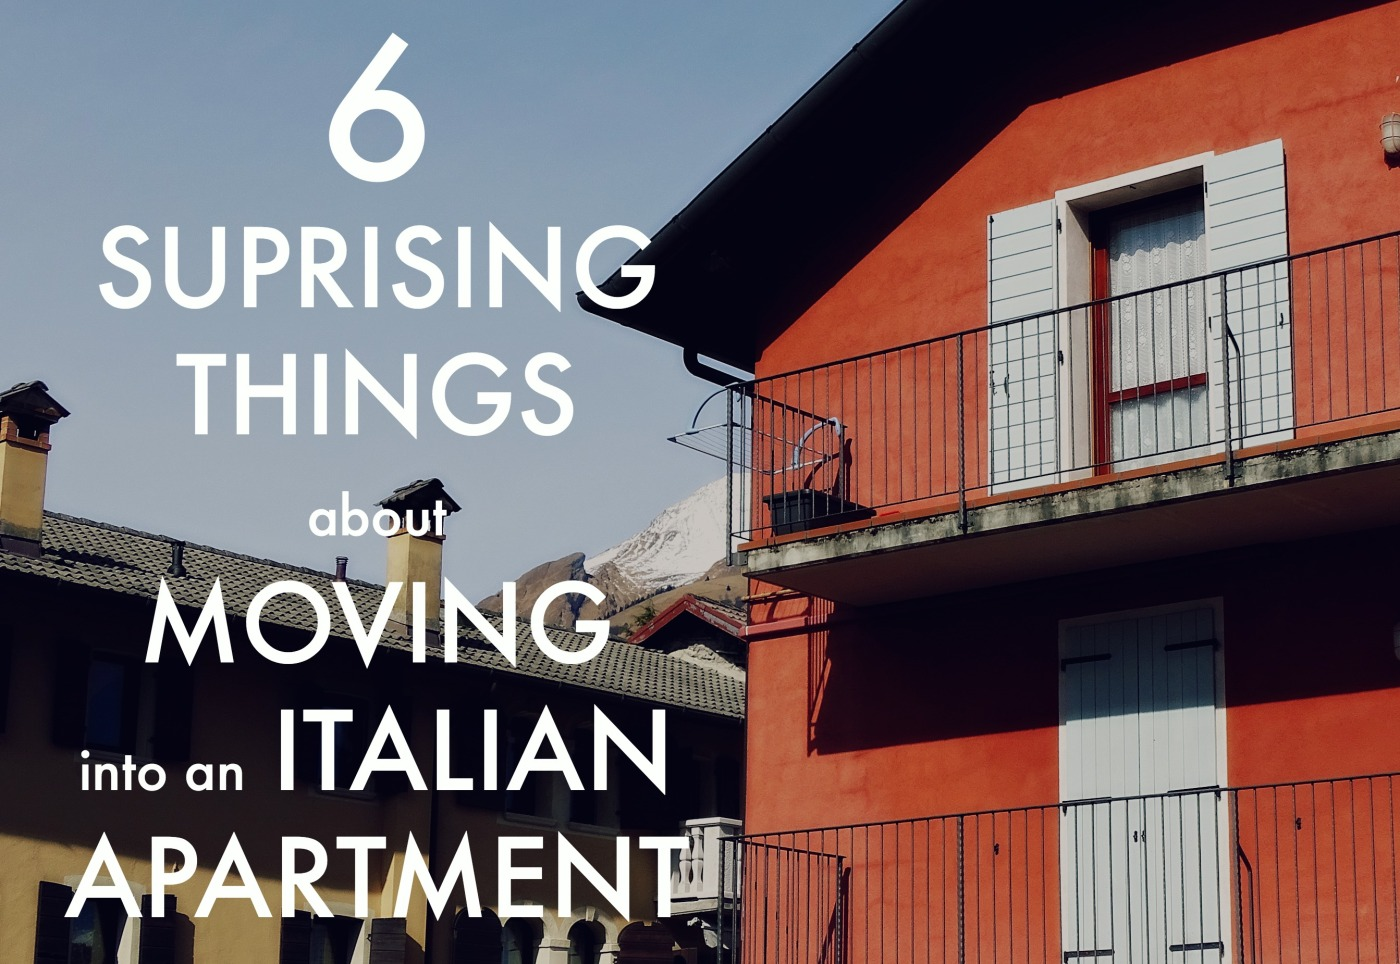 6 Surprising things about moving into an Italian apartment